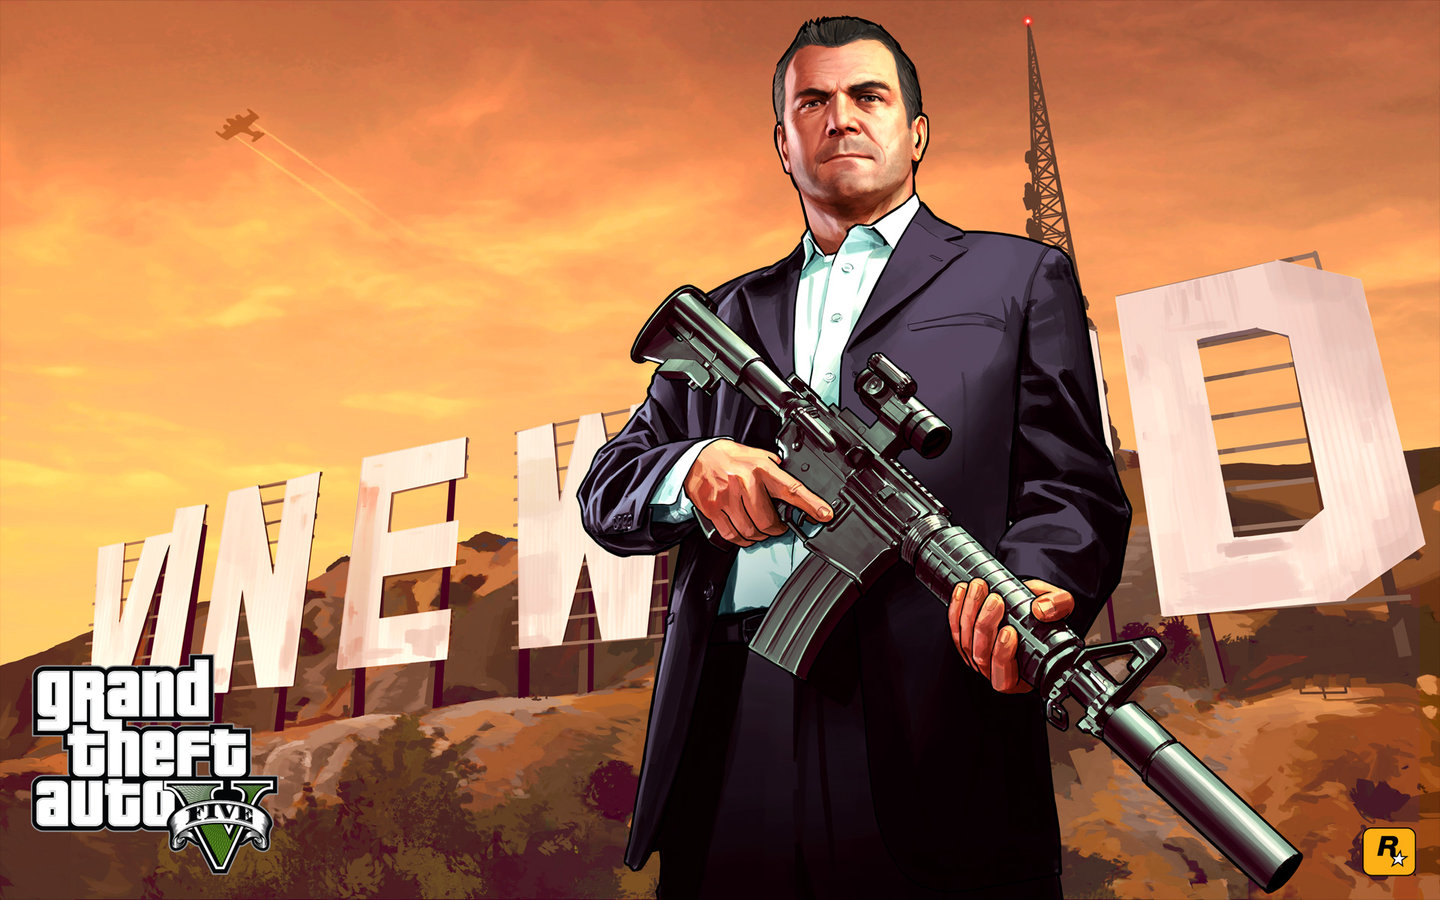 grand theft auto 5 Metacritic game reviews, grand theft auto v for pc, los santos: a sprawling sun-soaked metropolis full of self-help gurus, starlets and fading celebrities, once the envy of the western worl.